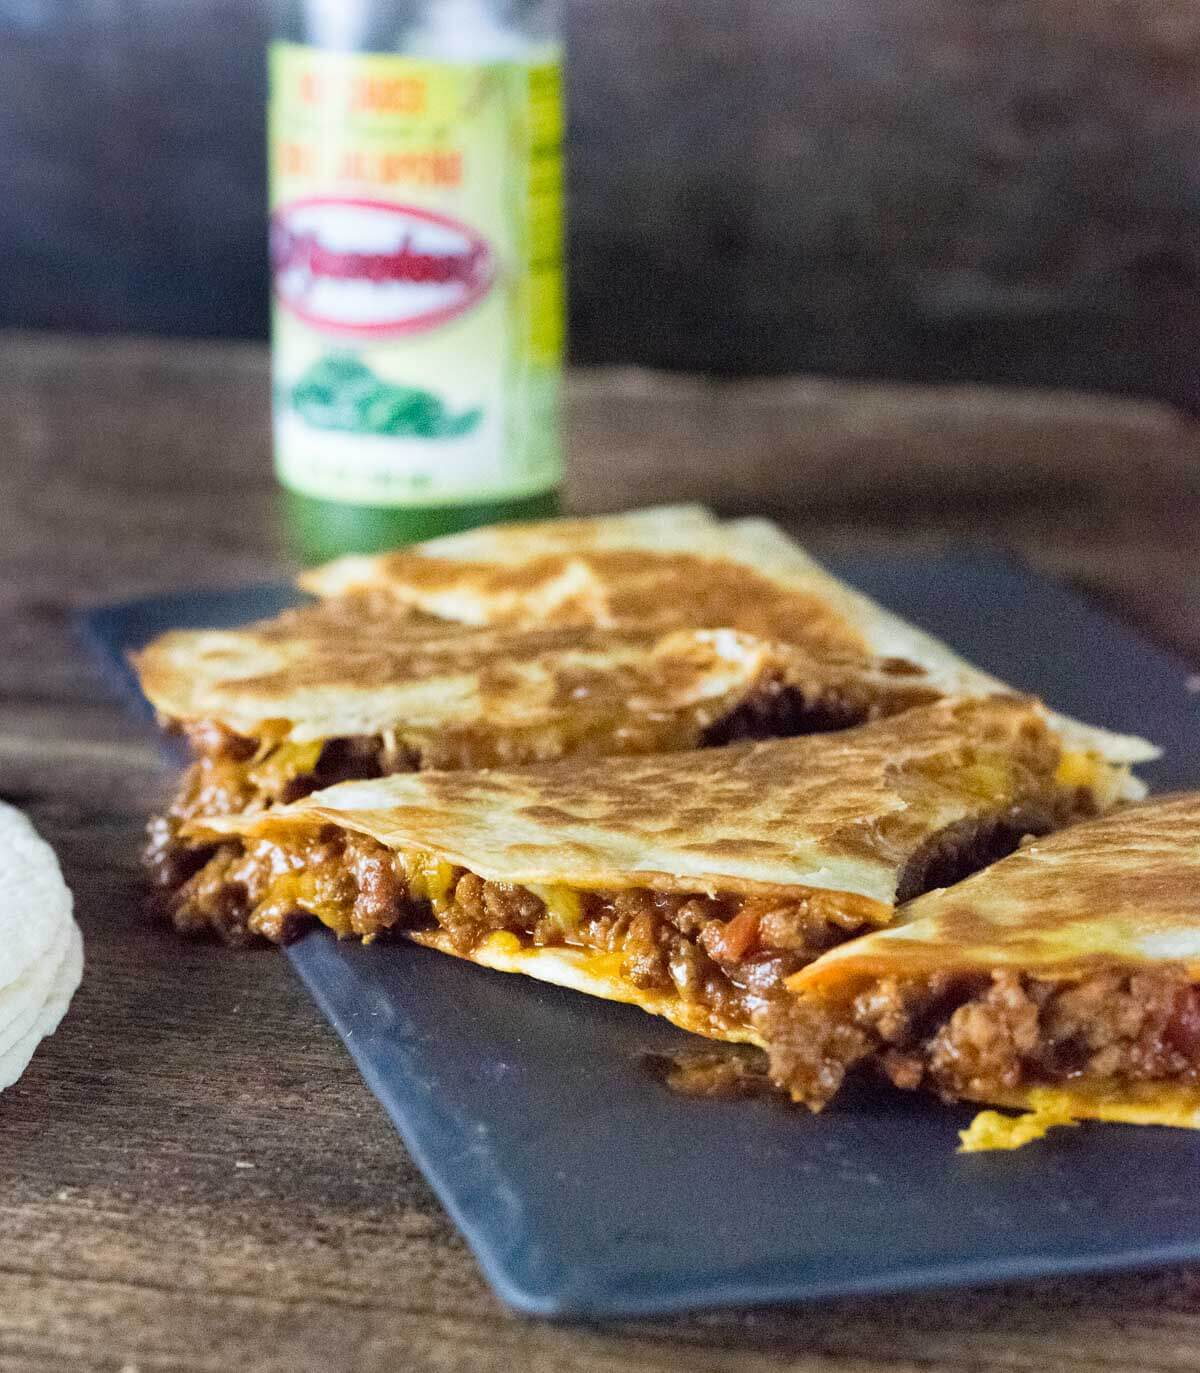 beef quesadillas with cheese dripping out.